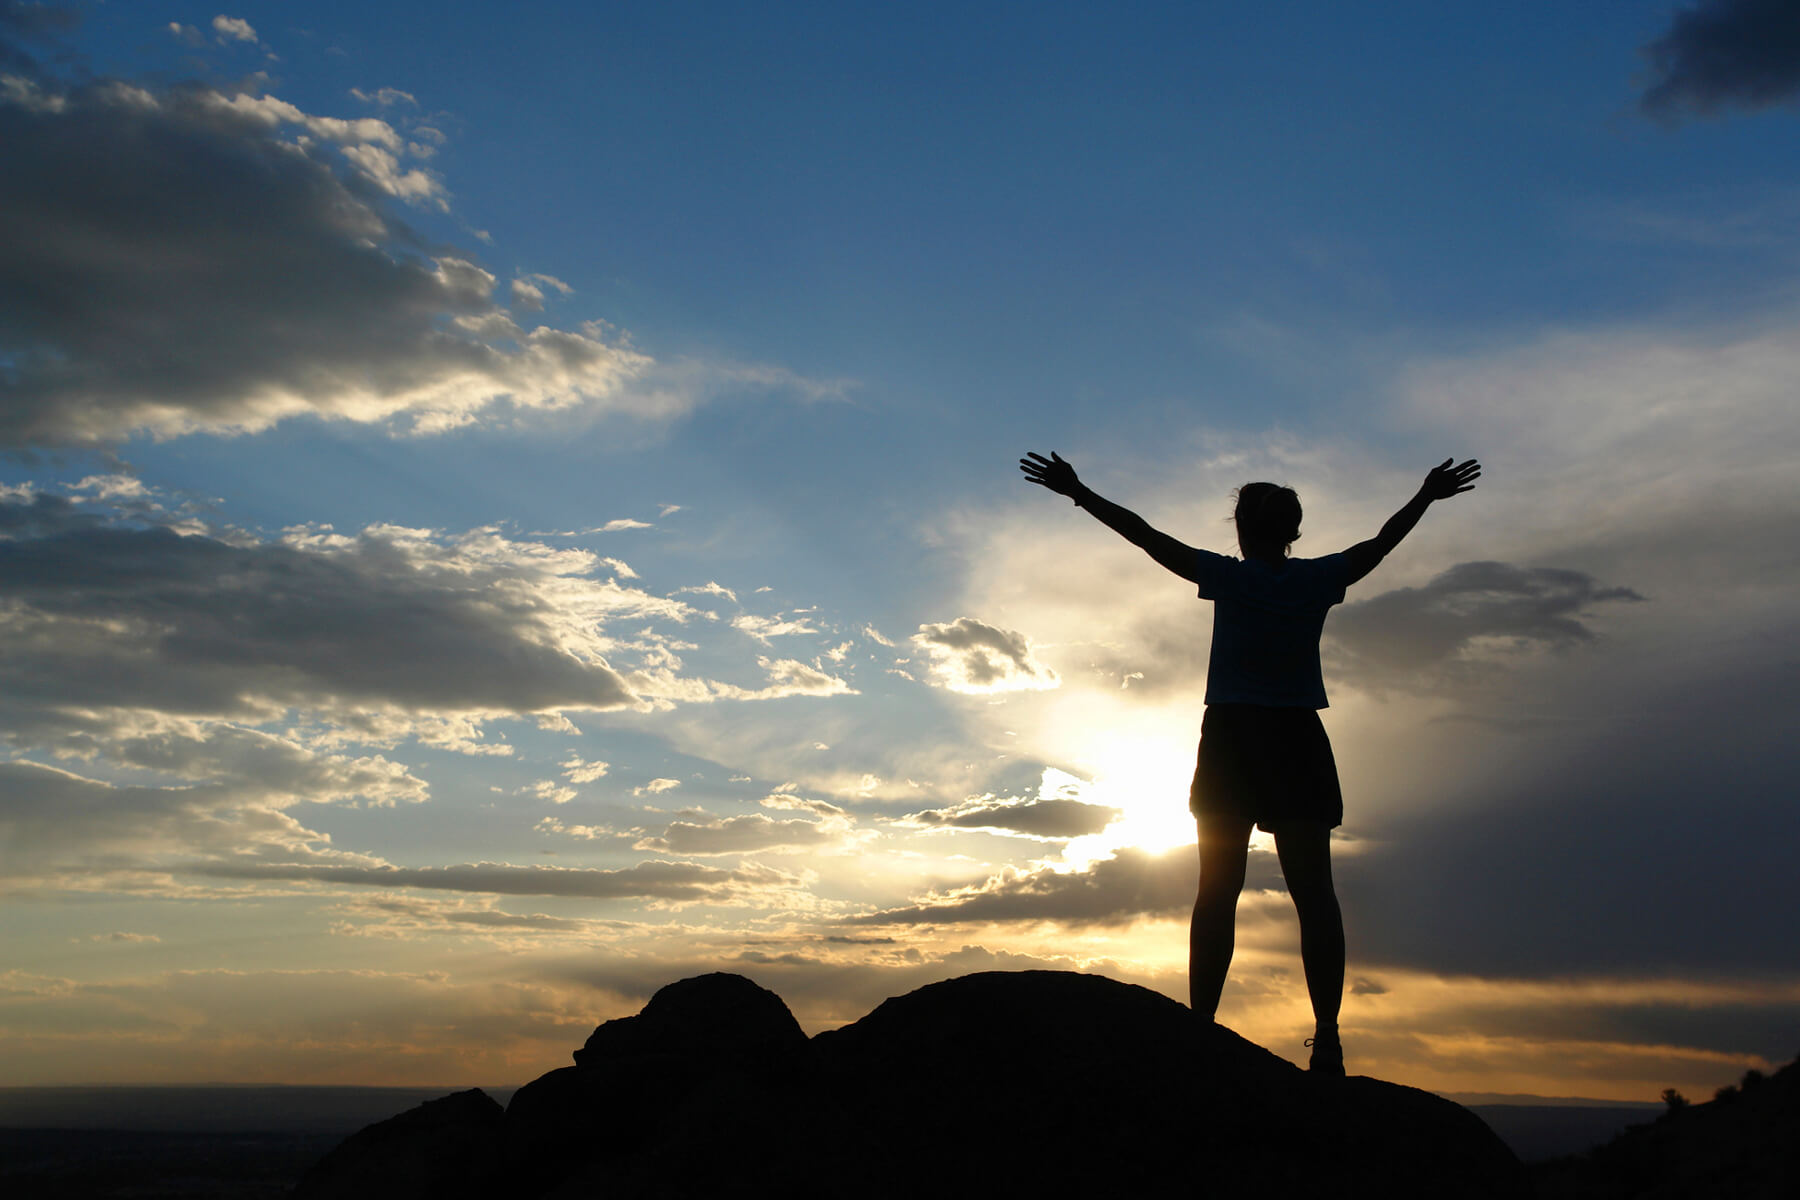 20 Ways To Be Inspirational - First Descents